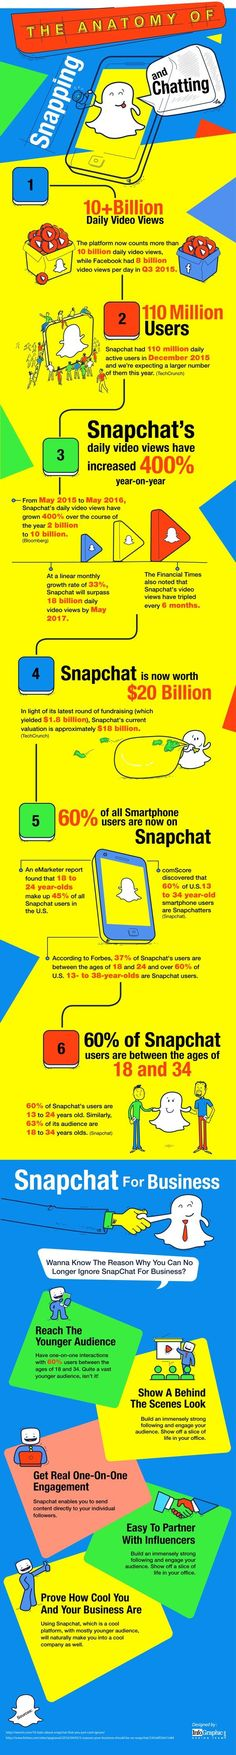 The Anatomy of Snapping and Chatting with - #infographic